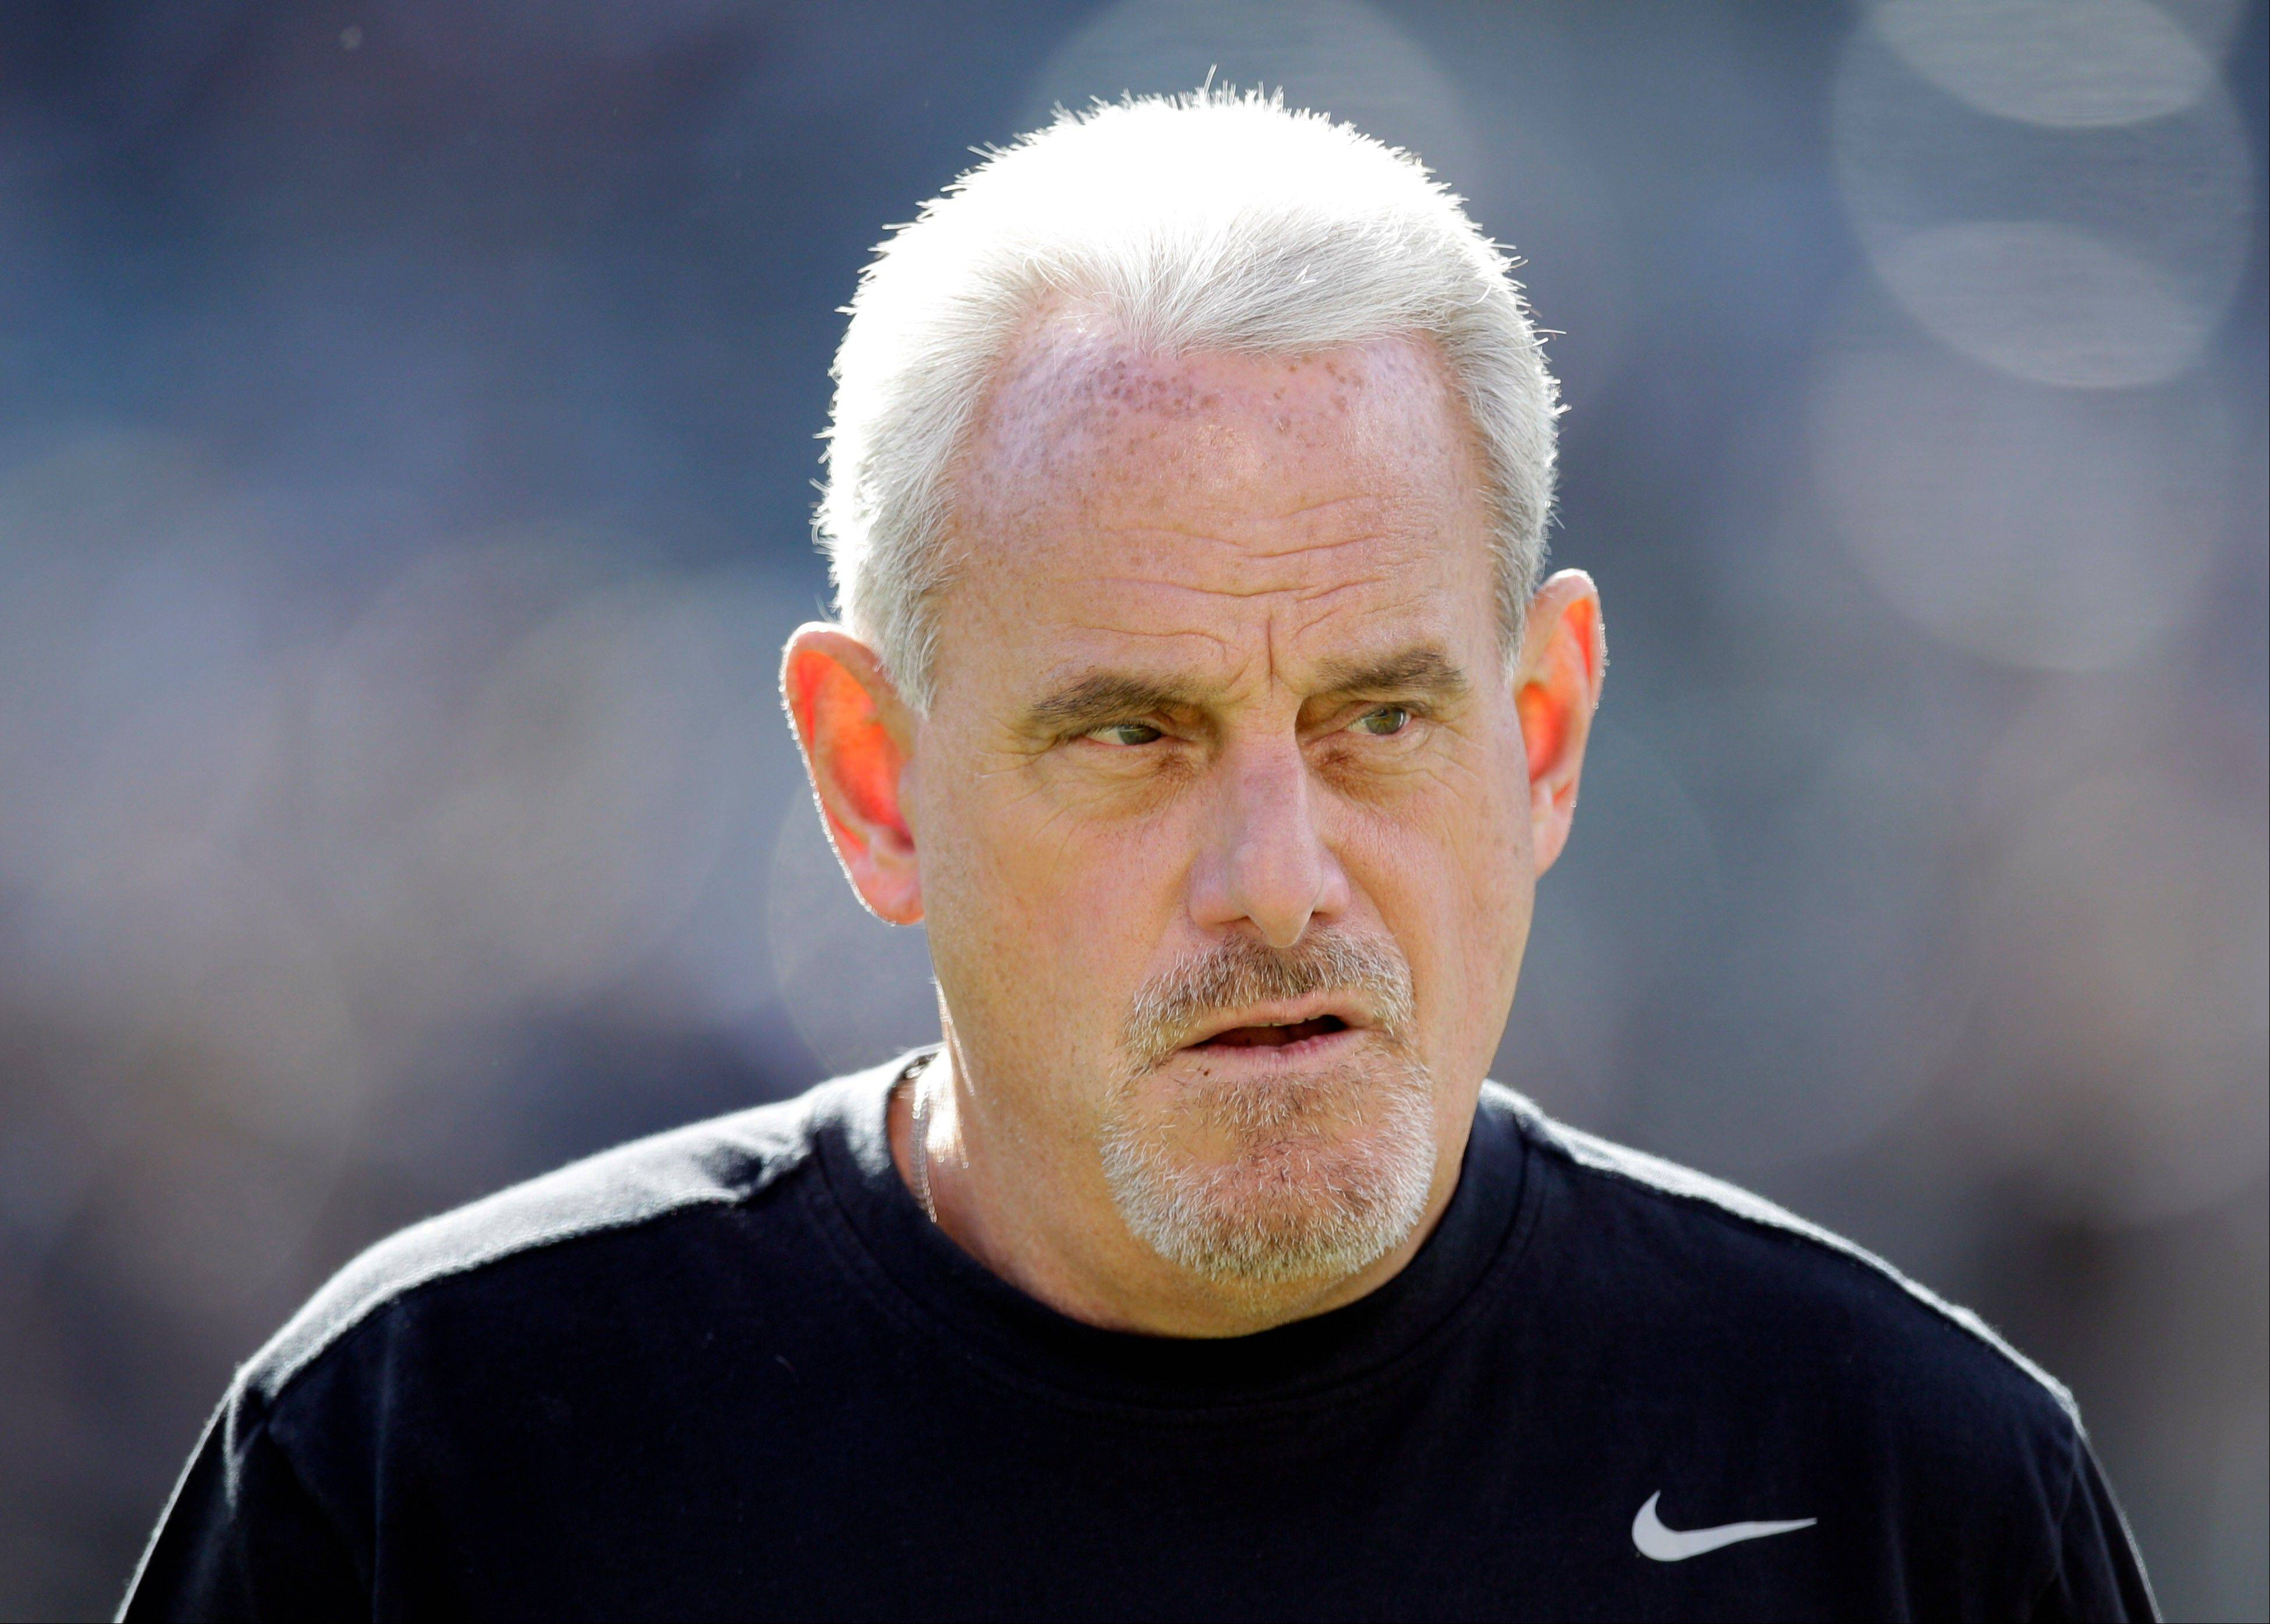 New Orleans Saints head coach Joe Vitt during a game against the Oakland Raiders. Former New Orleans defensive coordinator Gregg Williams said at an appeals hearing in the Saints bounty case that he tried to shut down the team's pay-for-pain system when the NFL began investigating but was overruled by Vitt, according to transcripts of the session that were obtained by The Associated Press.